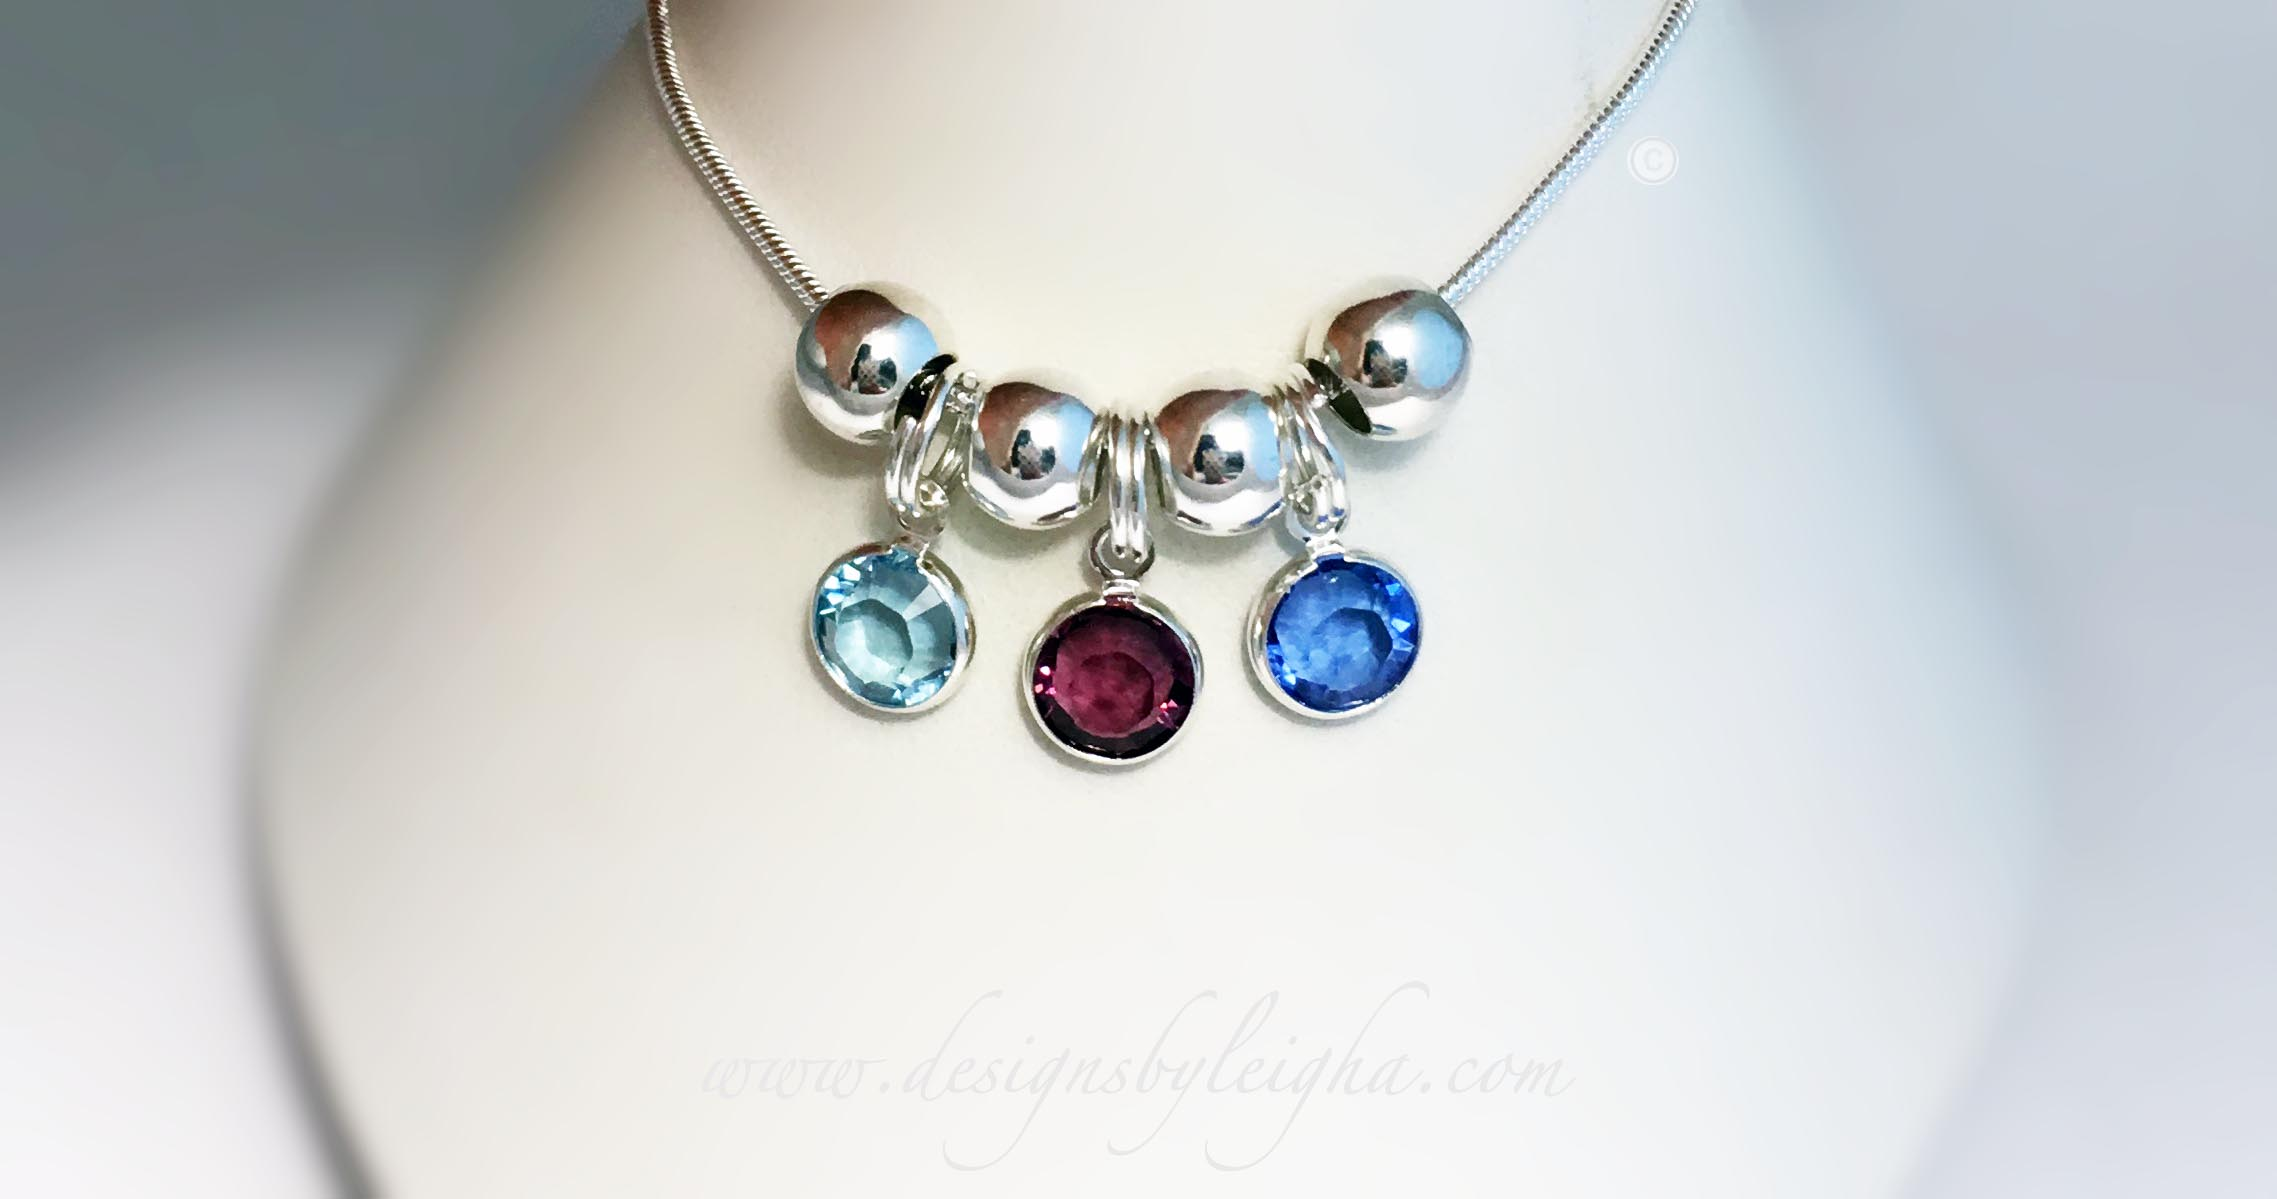 This Swarovski Crystal Birthstone Charm necklace is shown with 3 birthstones: March or Aquamarine, February or Amethyst, and September or Sapphire.